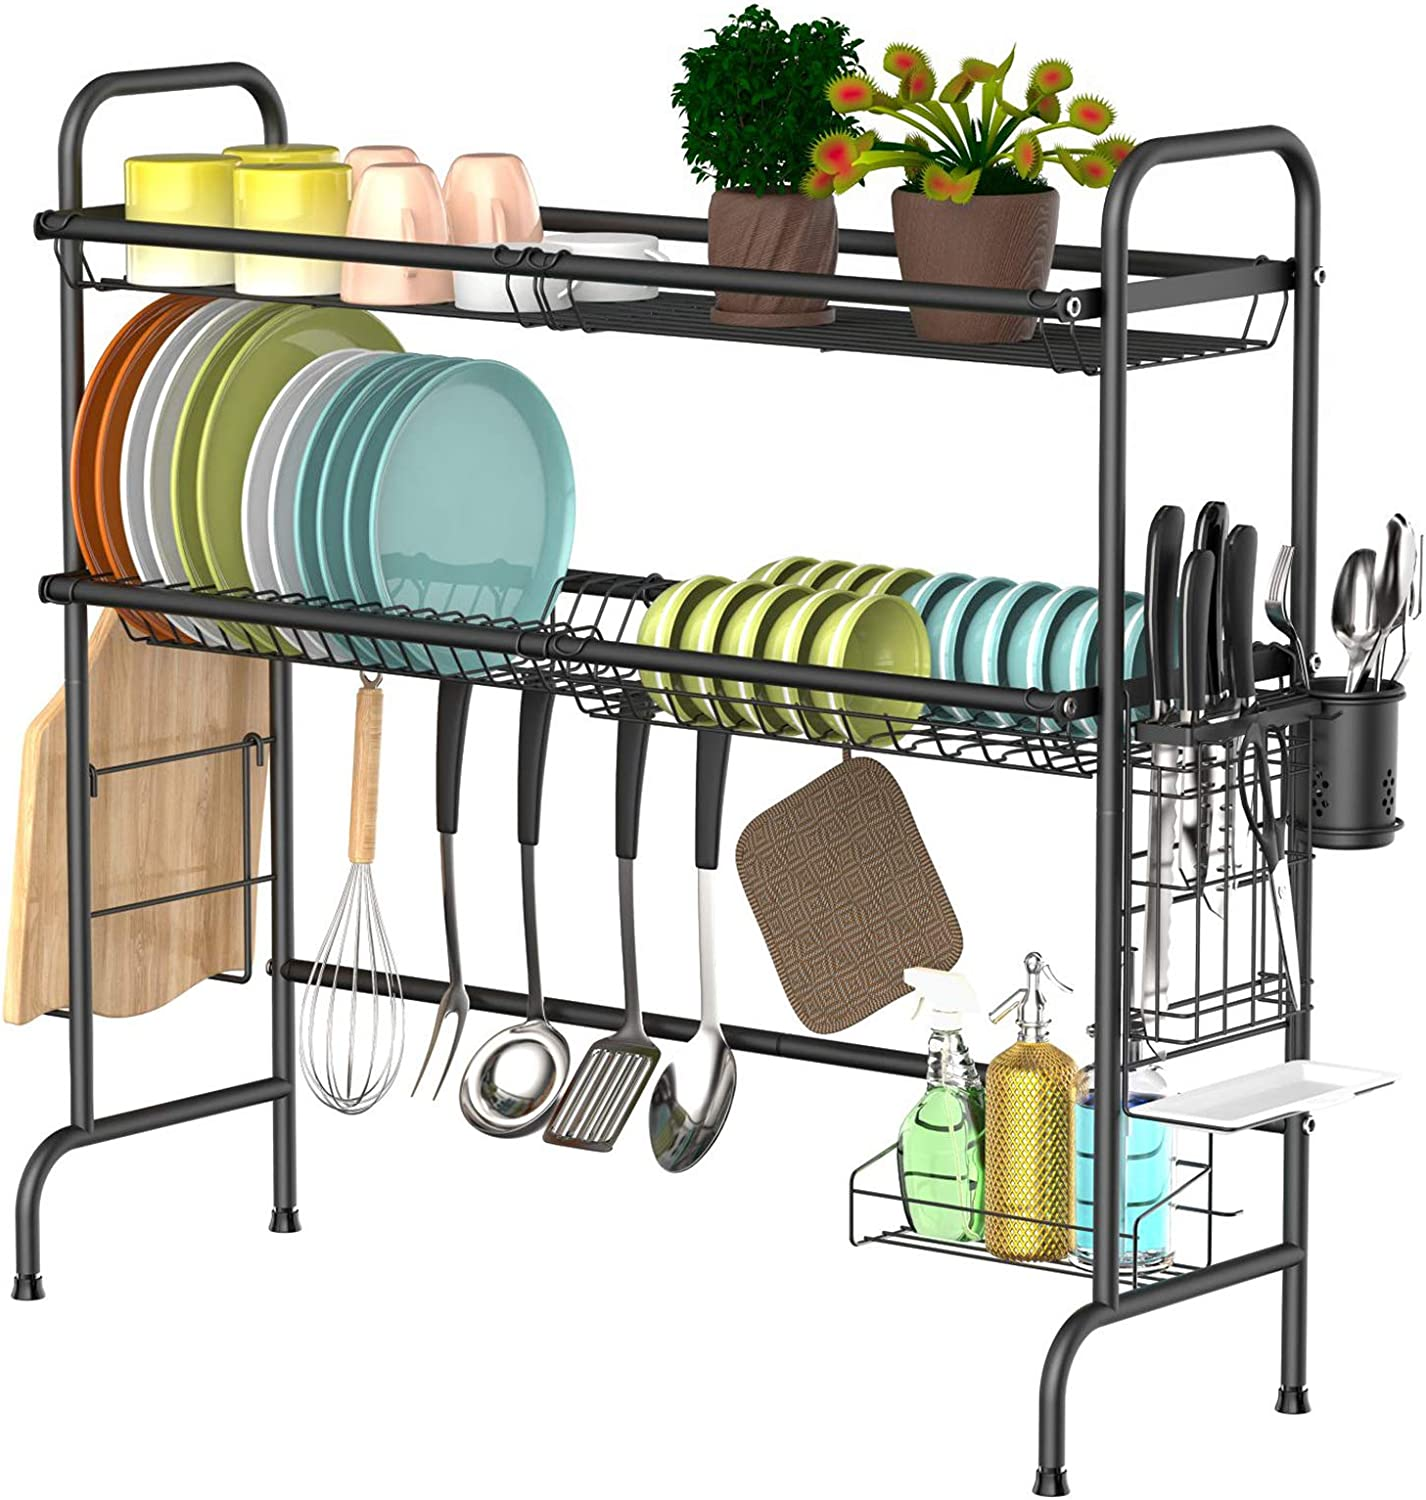 Over Sink Dish Fees free!! Rack Warmfill Stainless Steel Tier Max 79% OFF 2 D